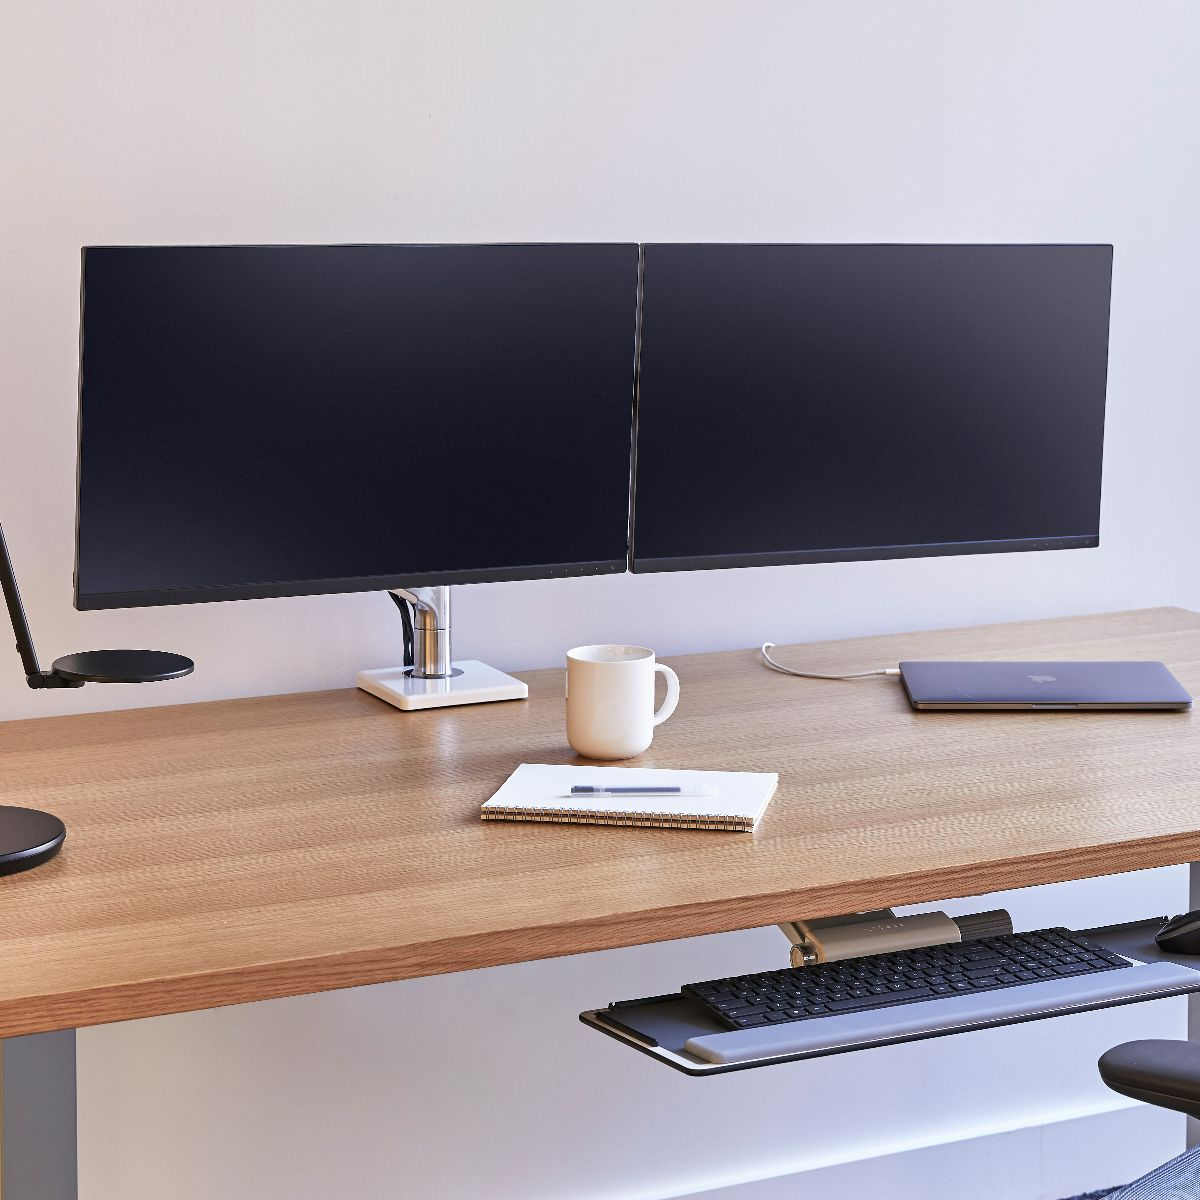 Accessories: Humanscale Monitor Arms